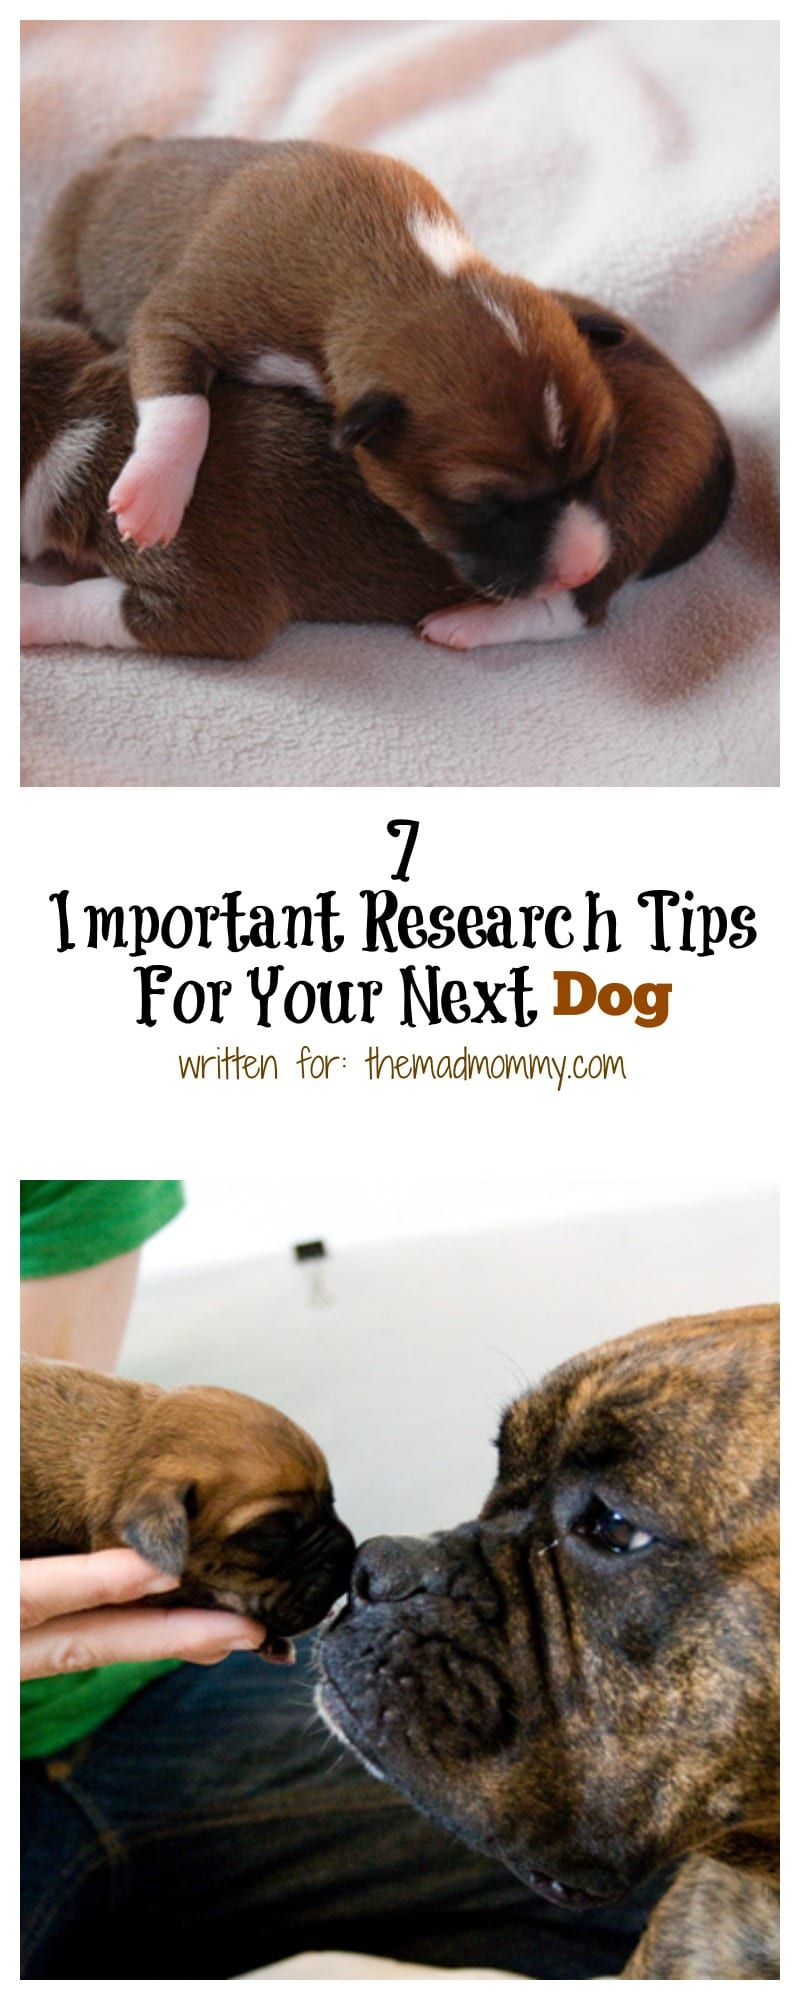 To help make sure you get things right when finding your perfect canine, we've come up with a list of 7 quick research tips to remember when buying a dog.